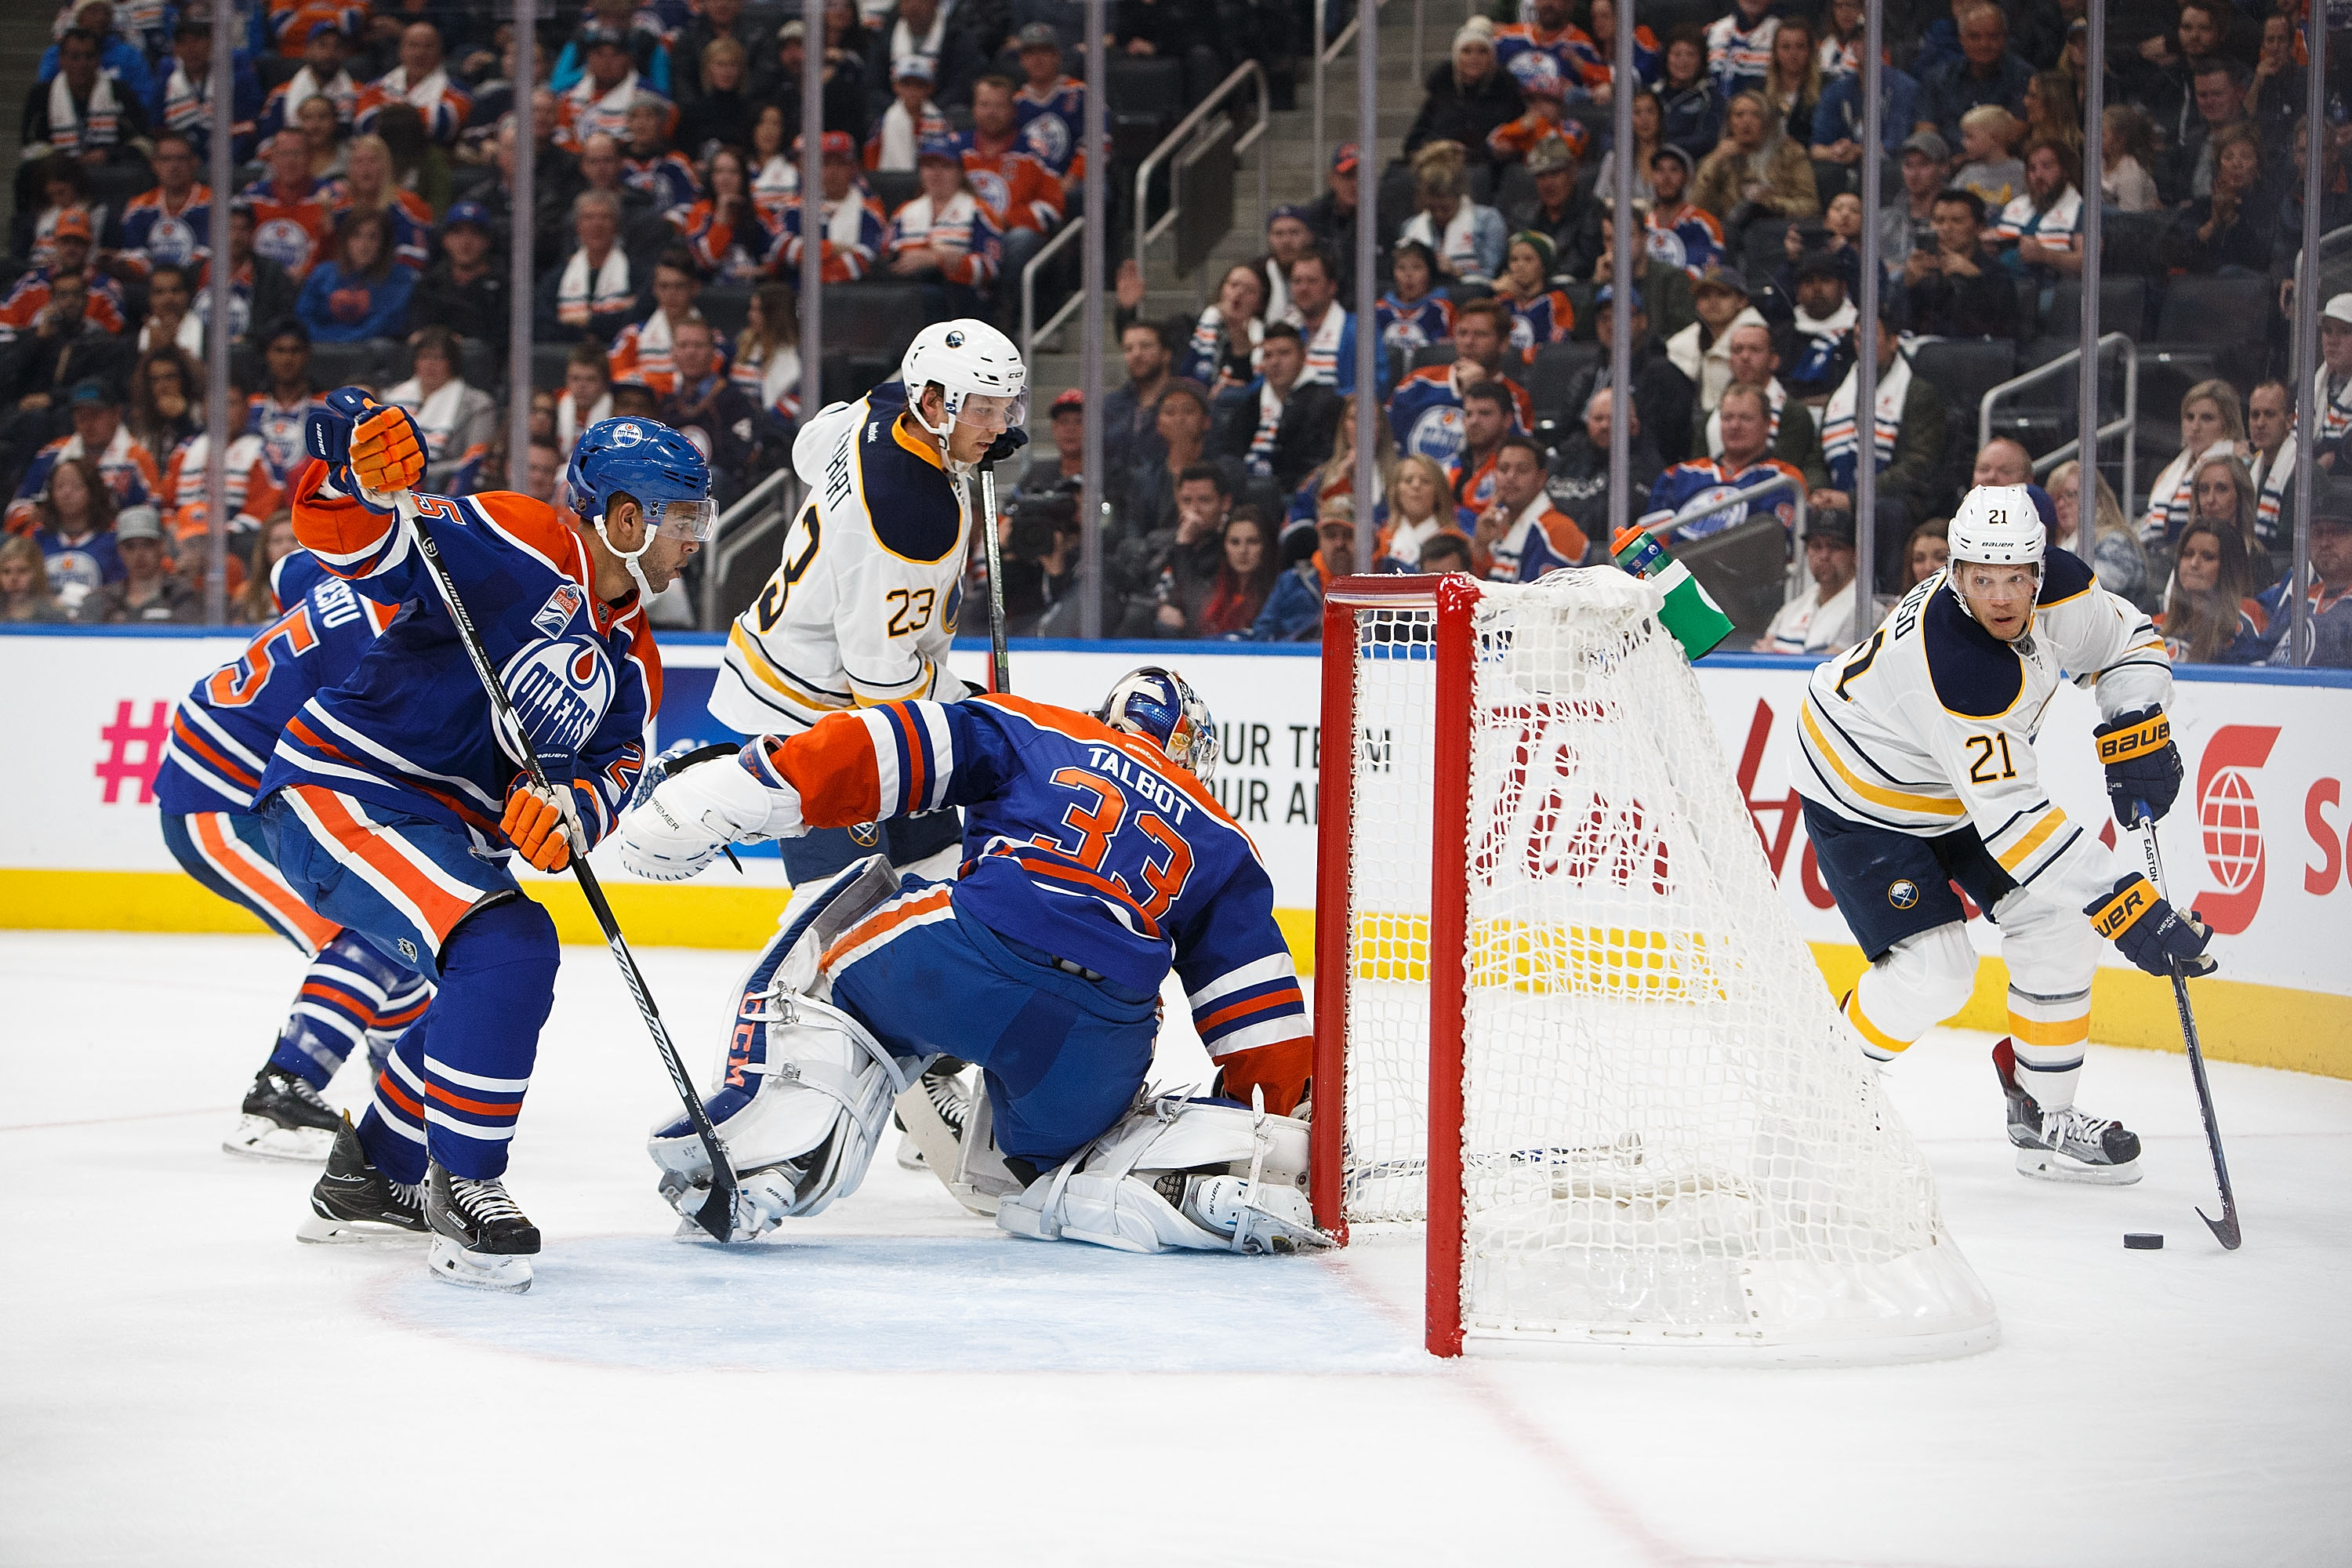 Sam Reinhart (23) does his best work for the Sabres near the net. (Getty Images)